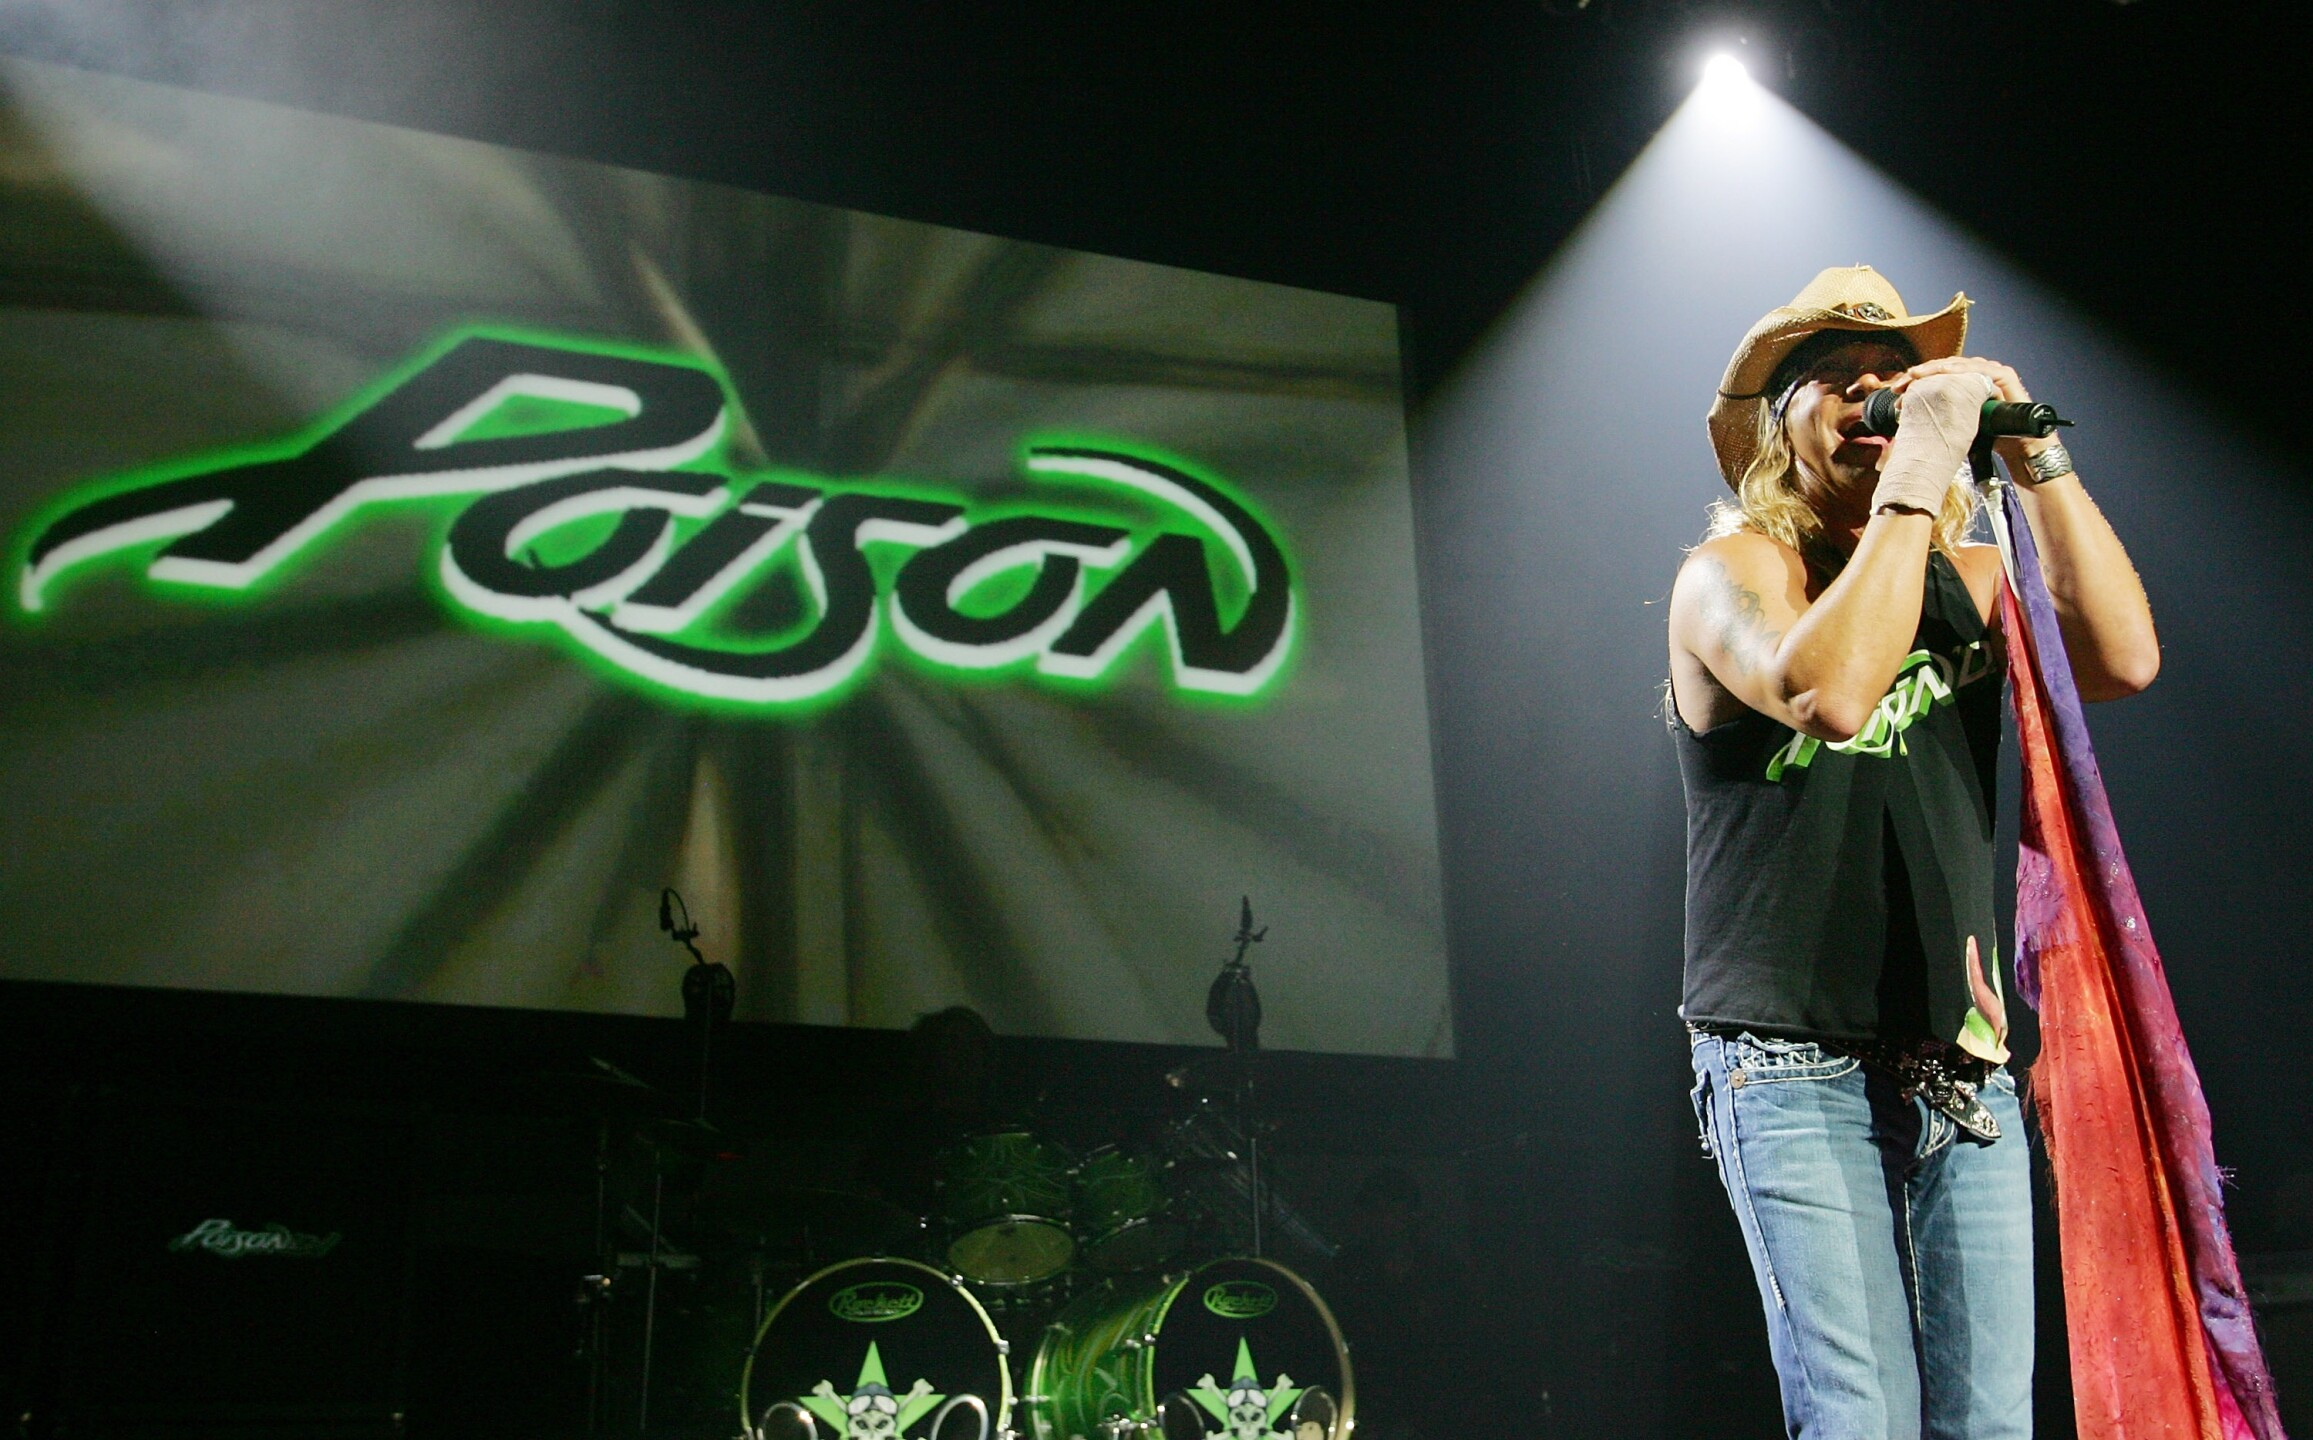 Poison And Ratt In Concert At The Palms In Las Vegas